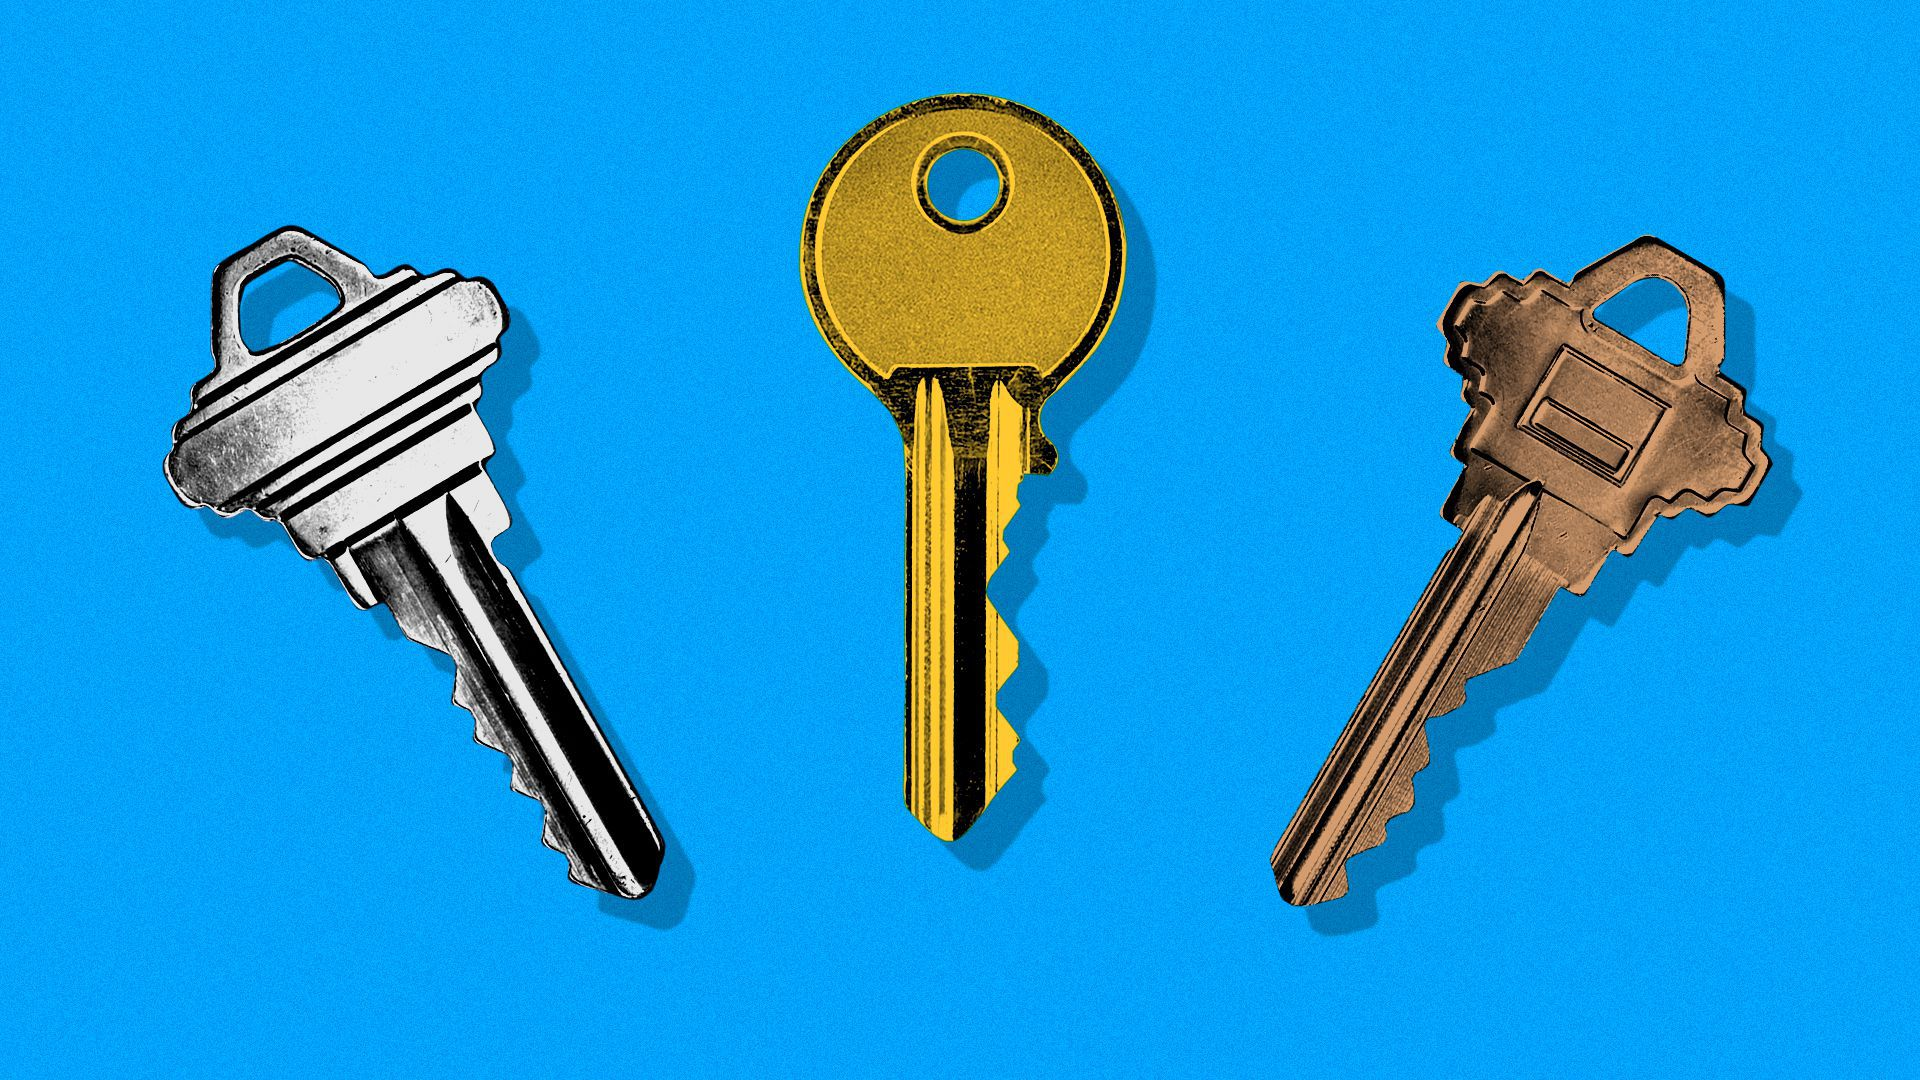 Illustration of three house keys, one silver, one gold, one bronze.